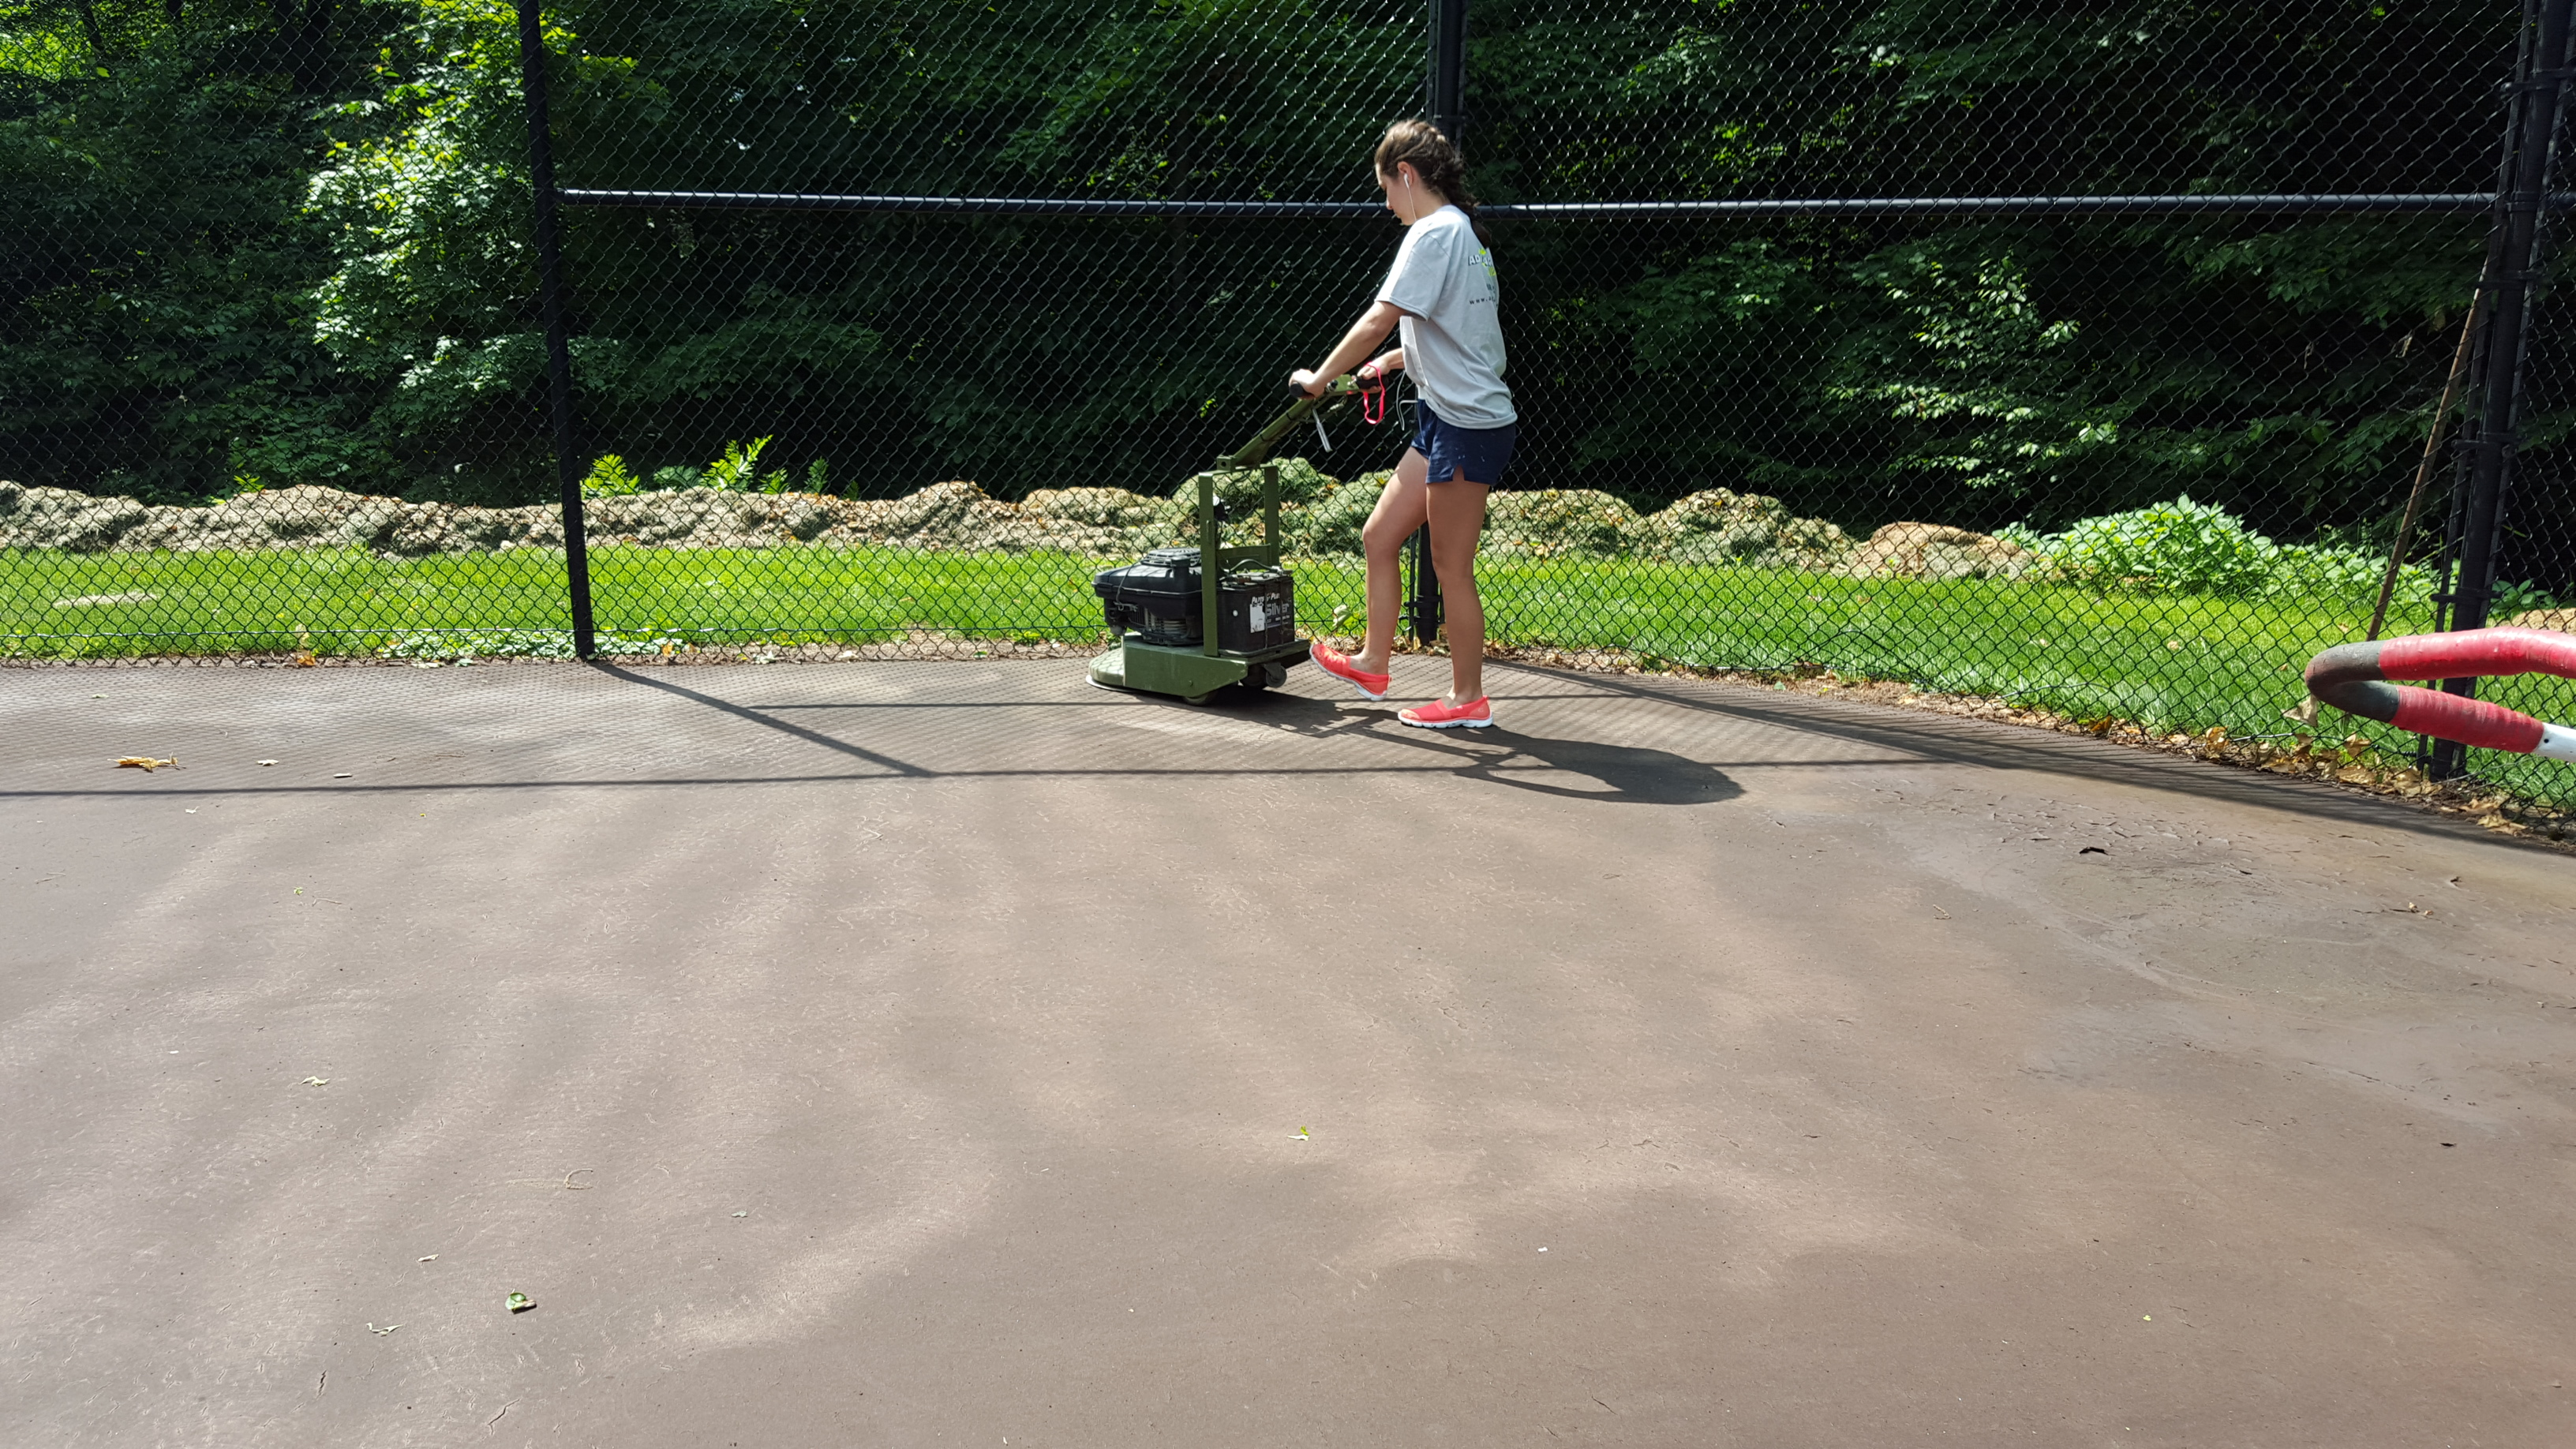 Sanding A Tennis Court Surface